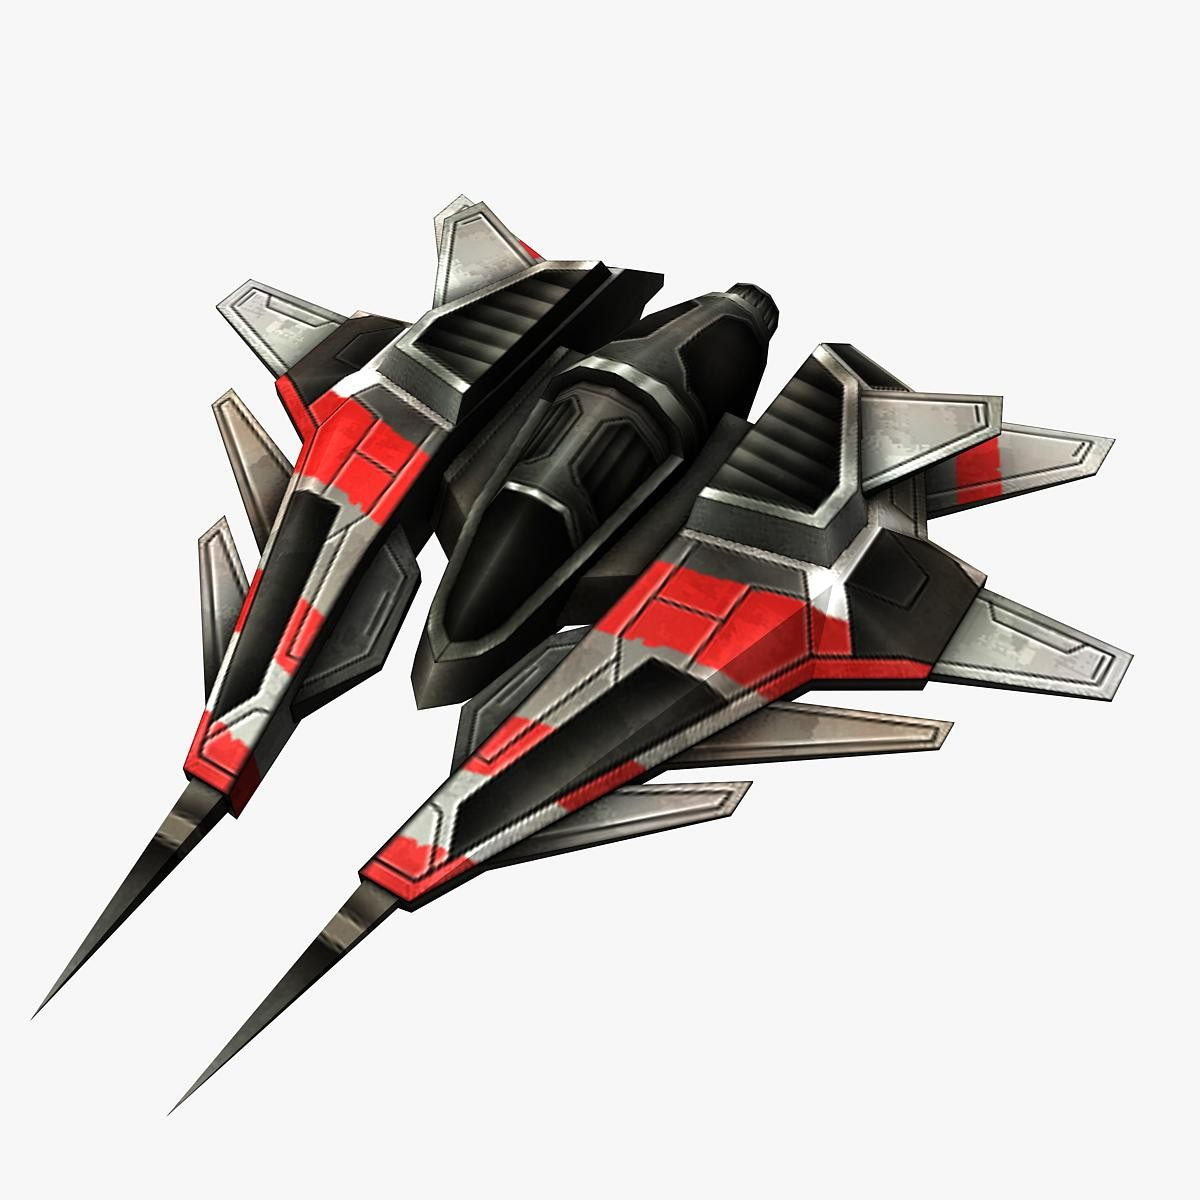 spaceship_fighter_2_preview_0.jpg